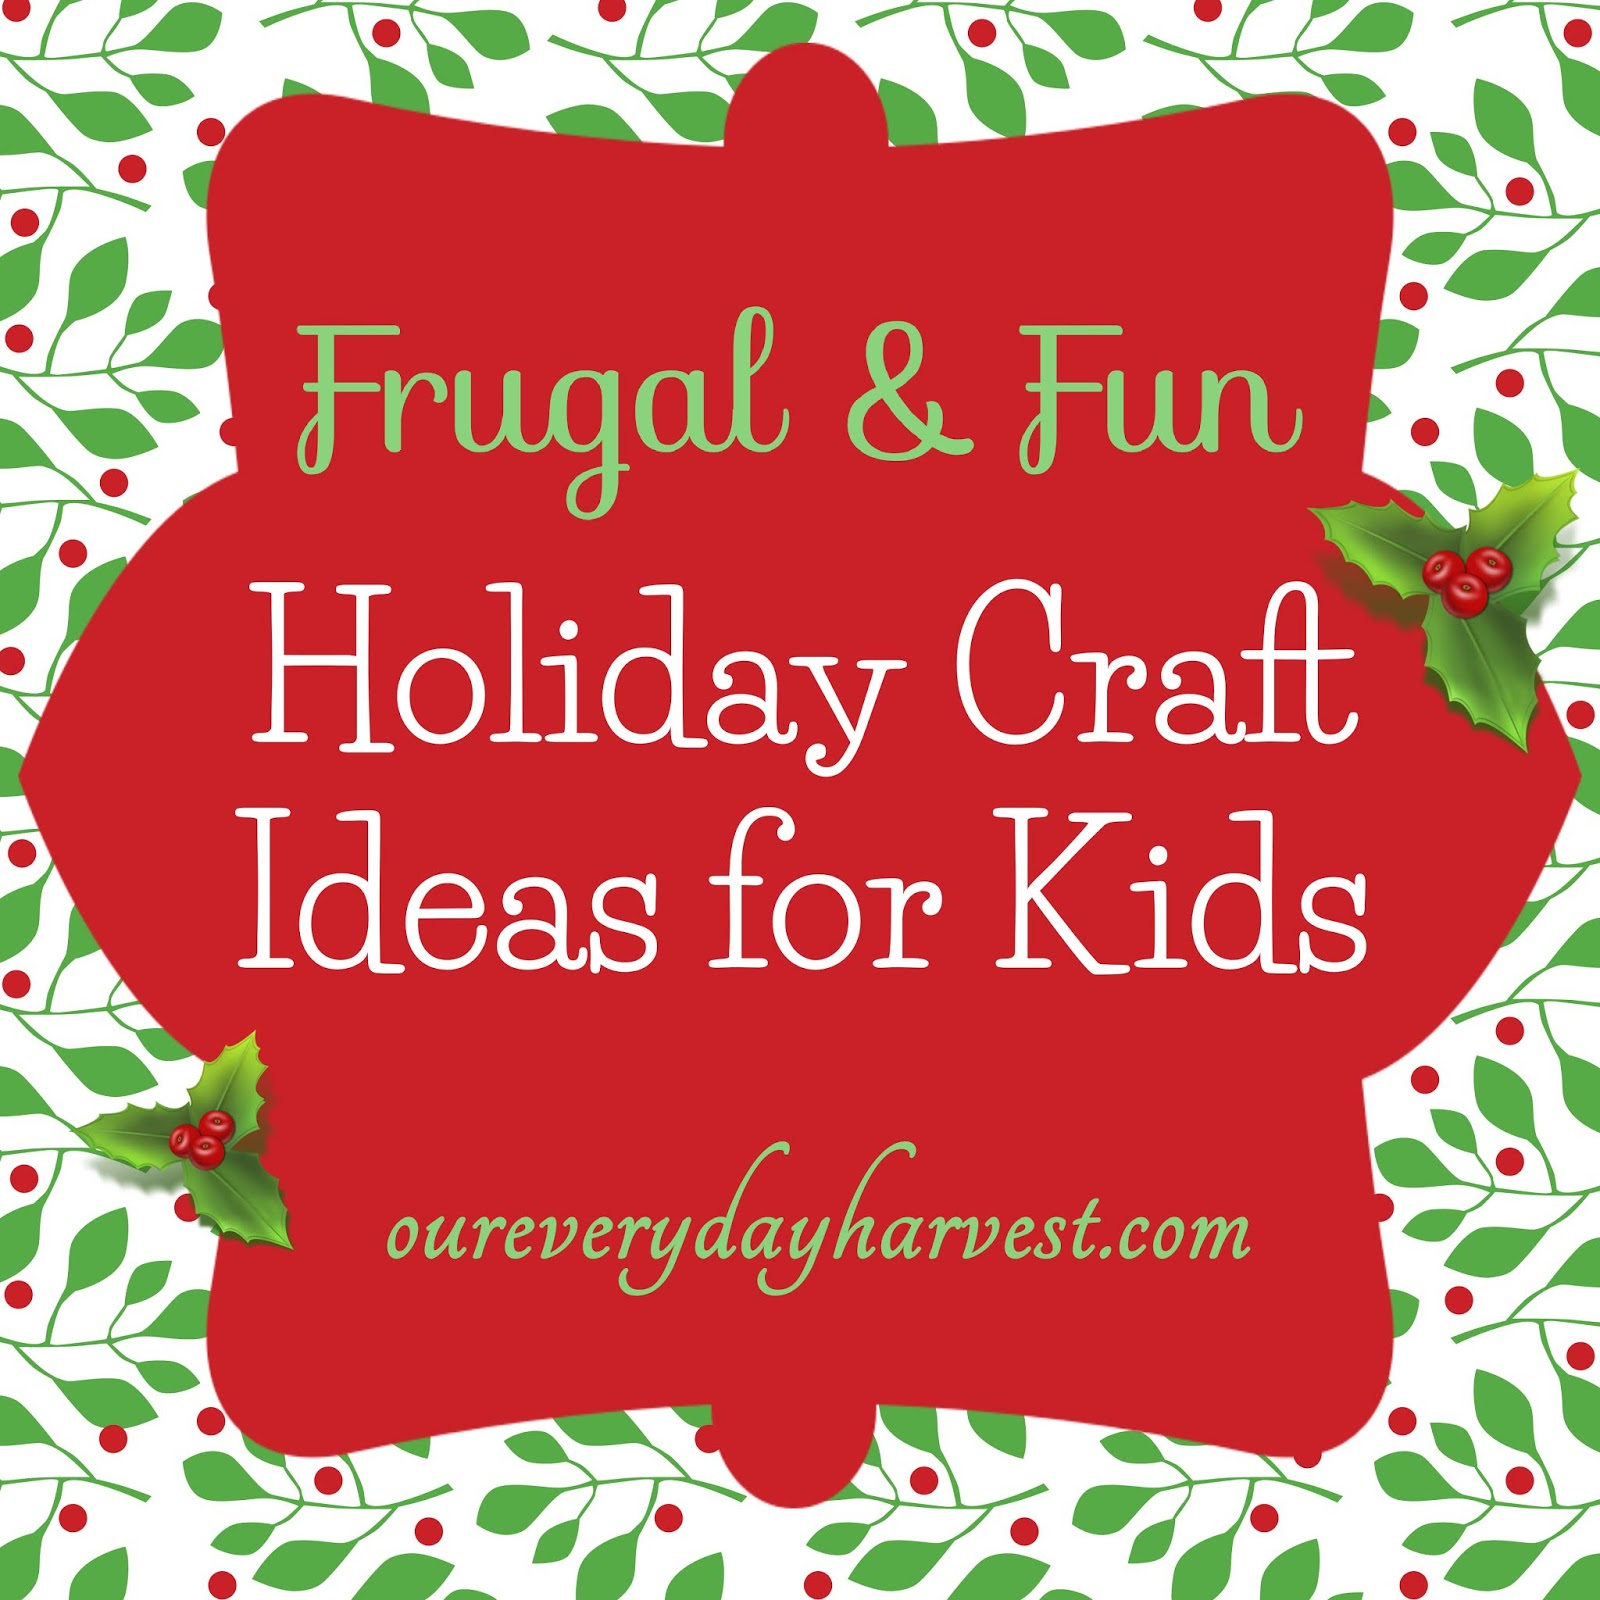 hight resolution of Frugal \u0026 Fun Holiday Craft Ideas for Kids   Our Everyday Harvest